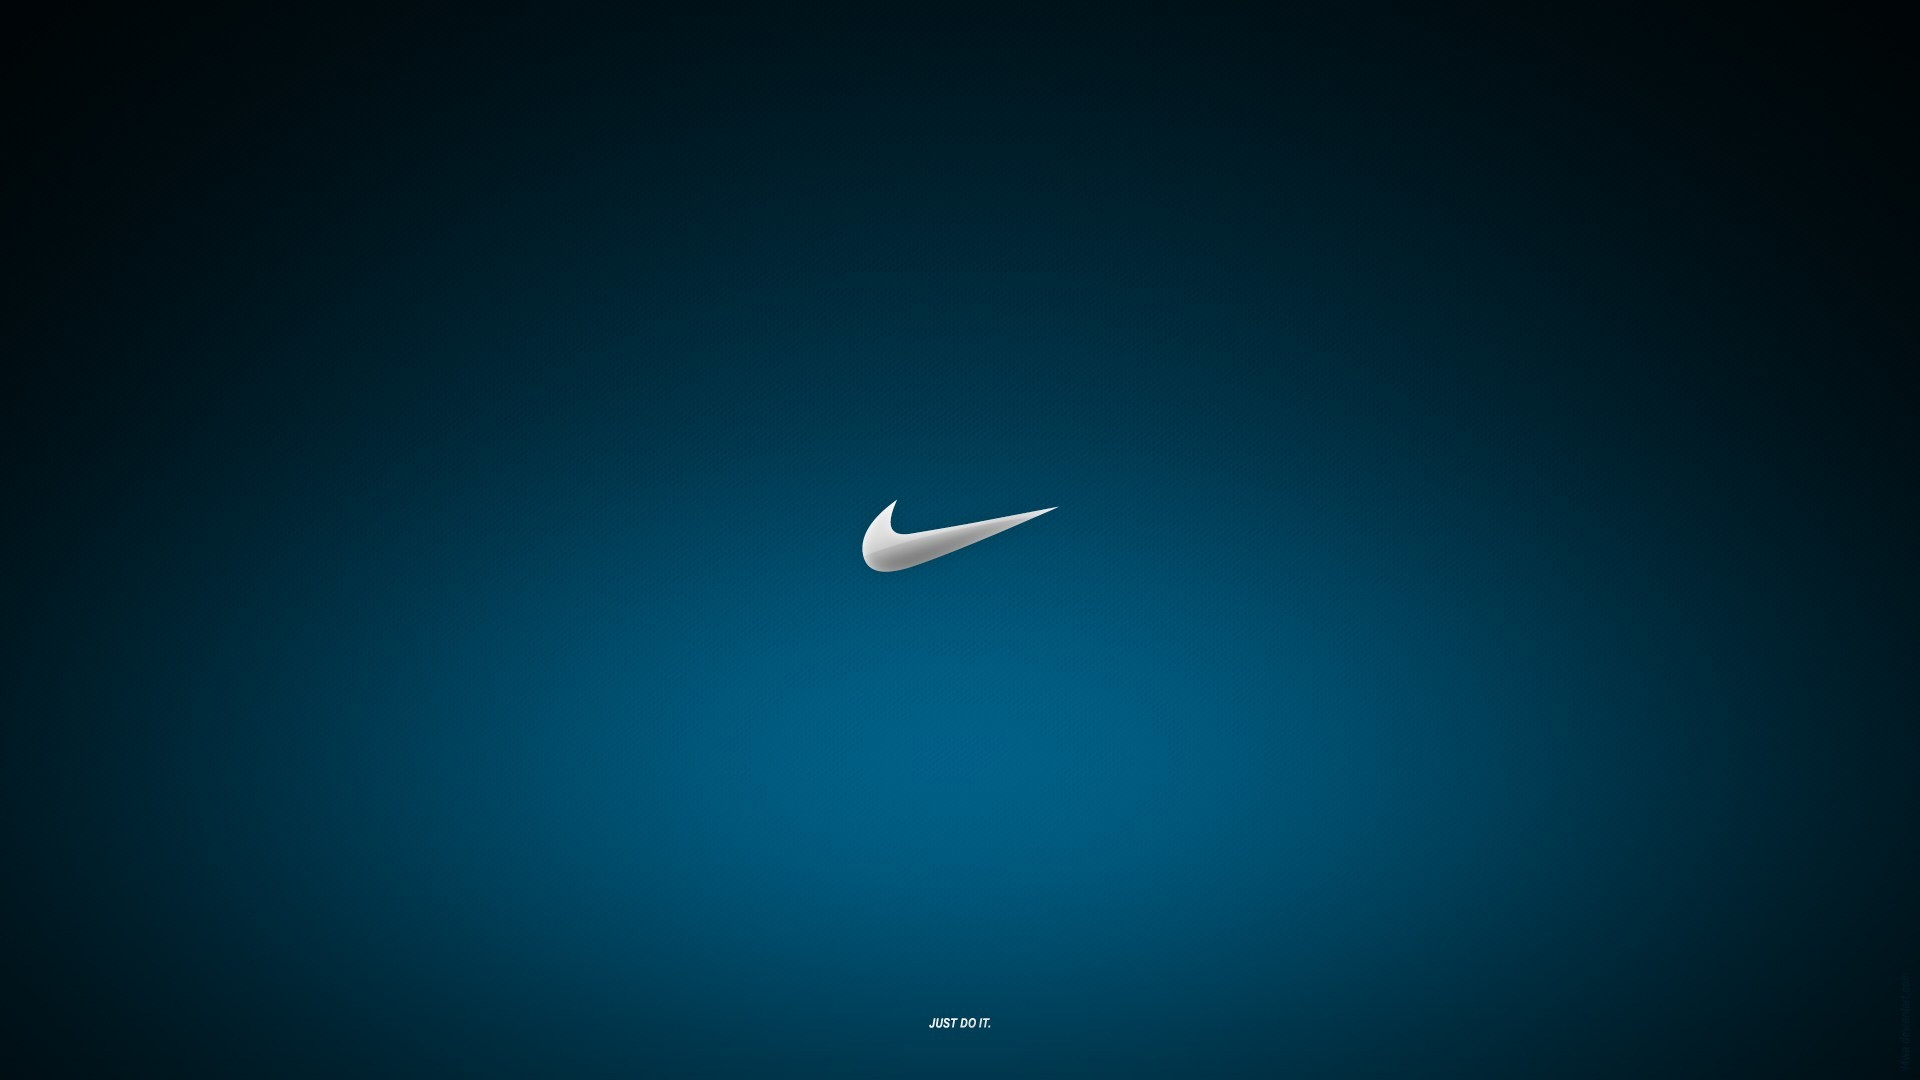 … Cool Nike Wallpapers Free Download Wallpapers – Download Free Cool  Wallpapers for PC Download Free 3D